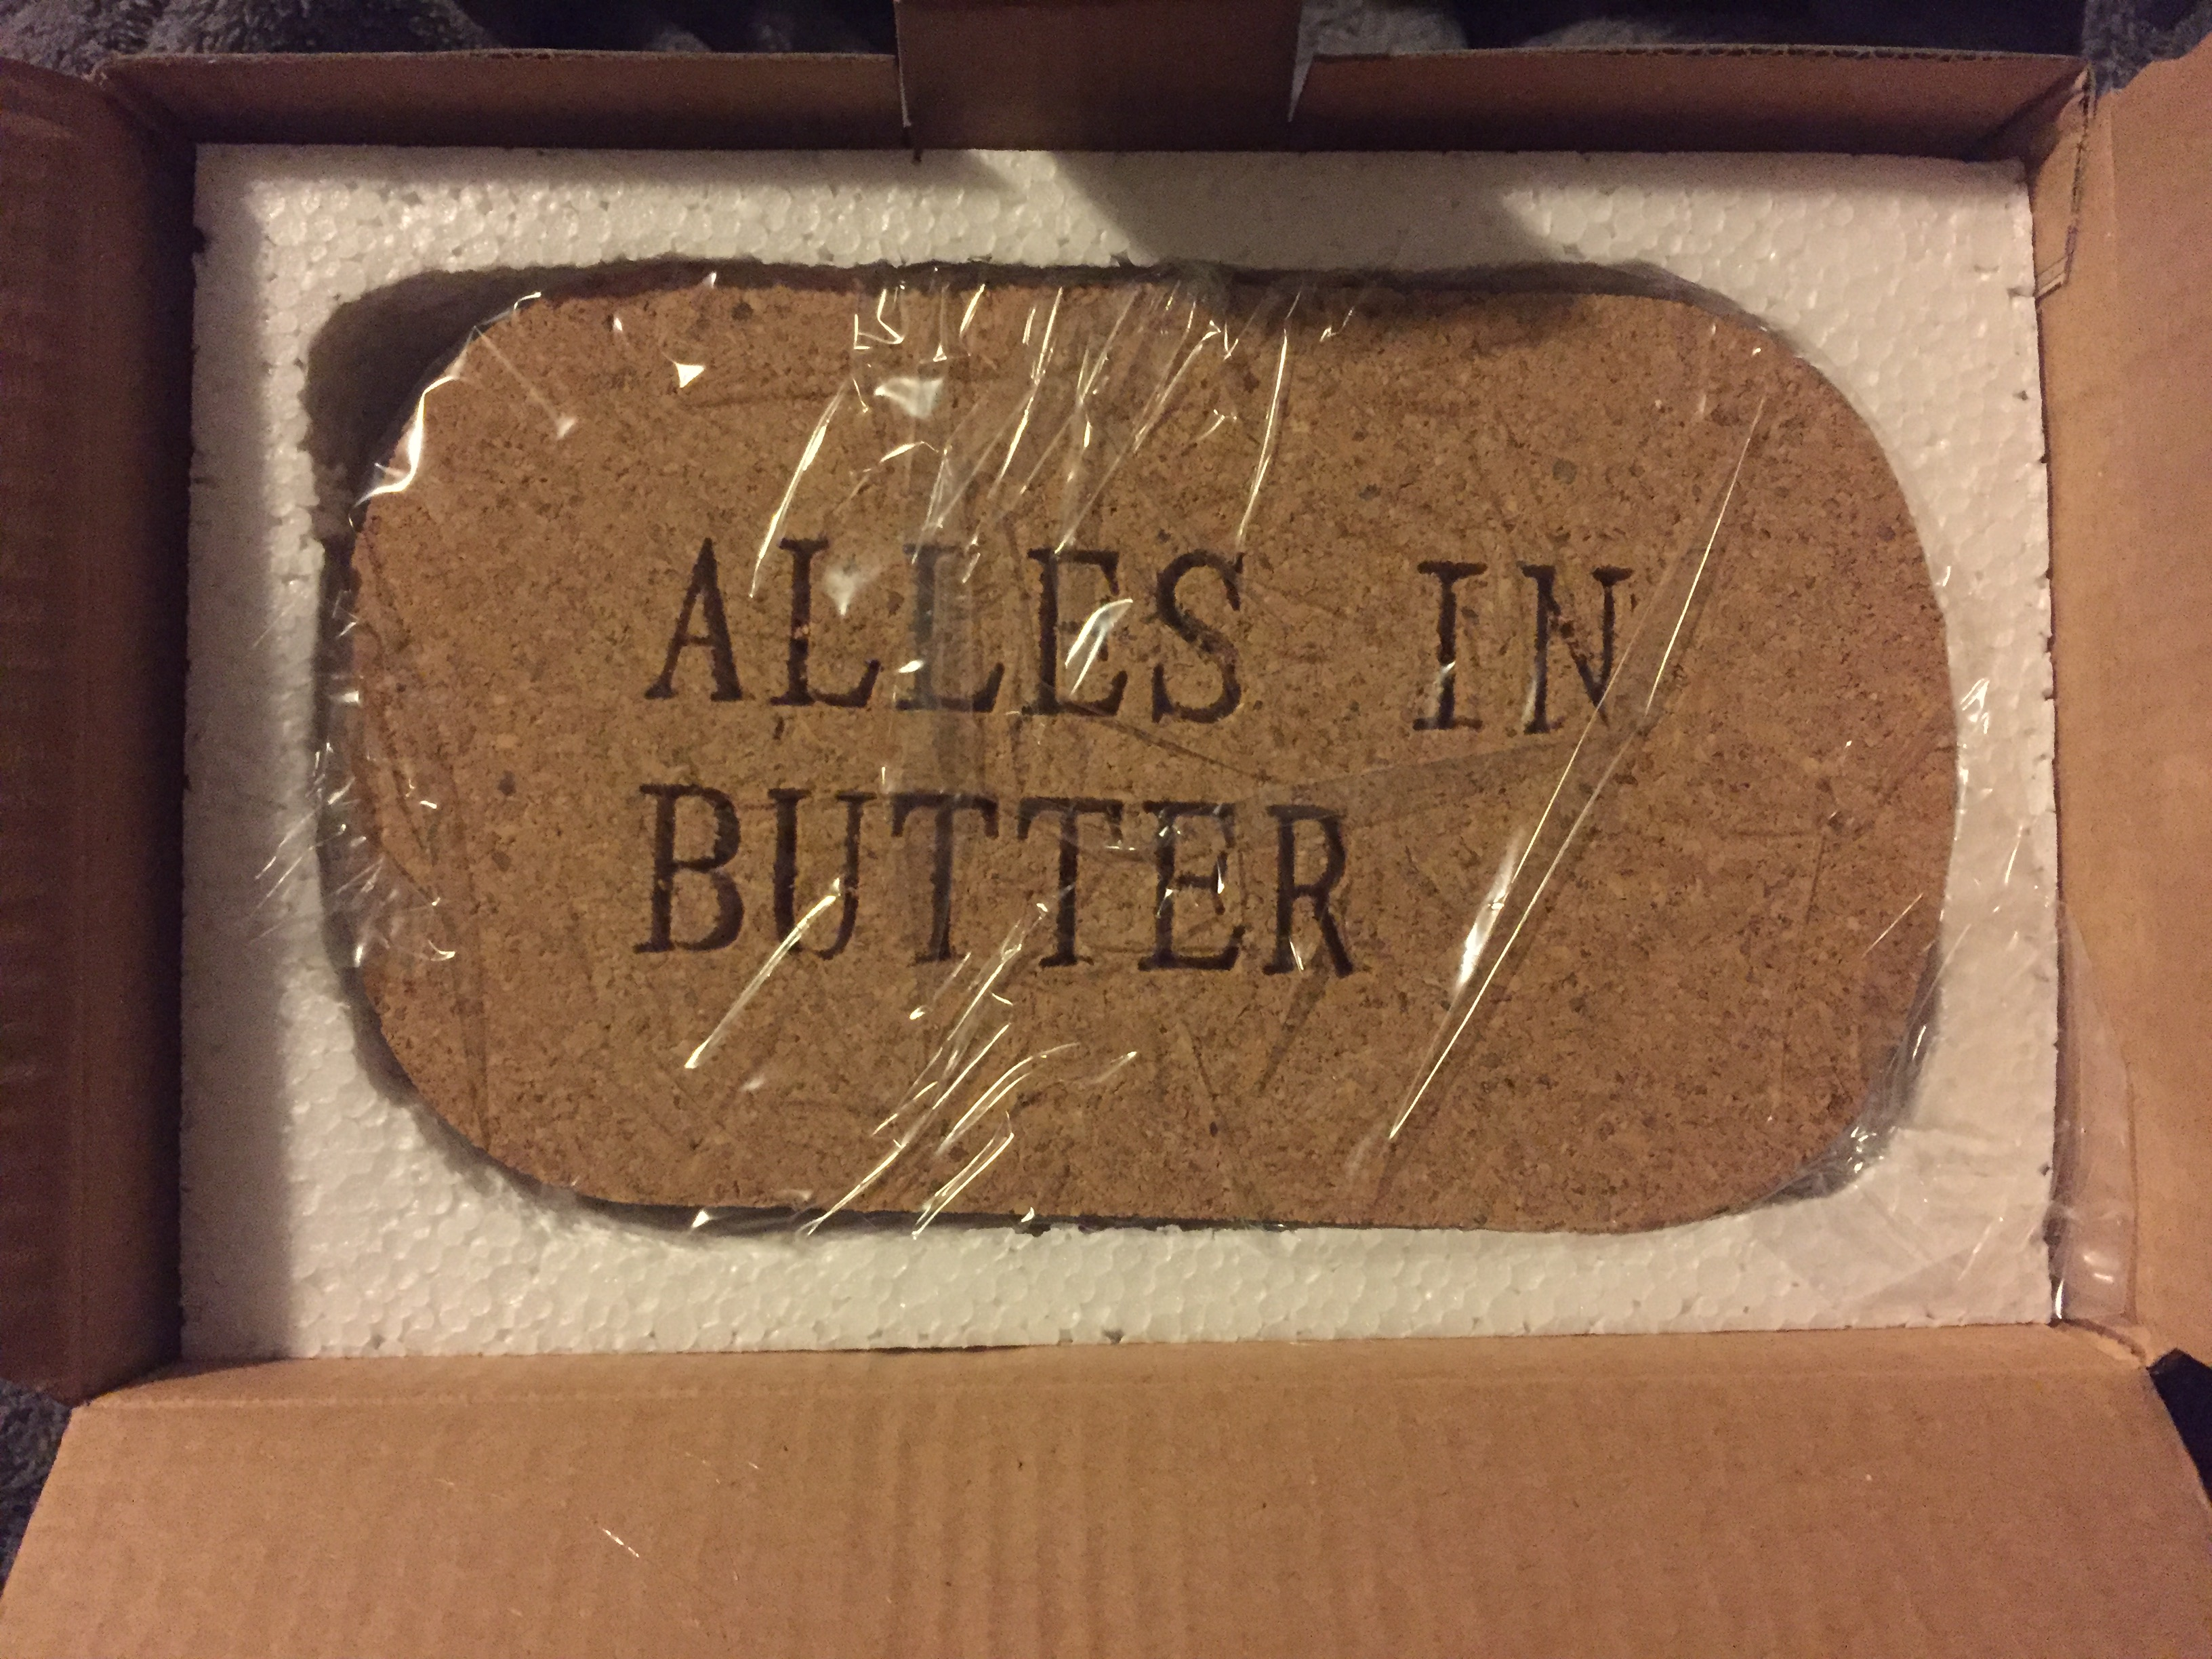 Alles Ist In Butter… Mit Sweese